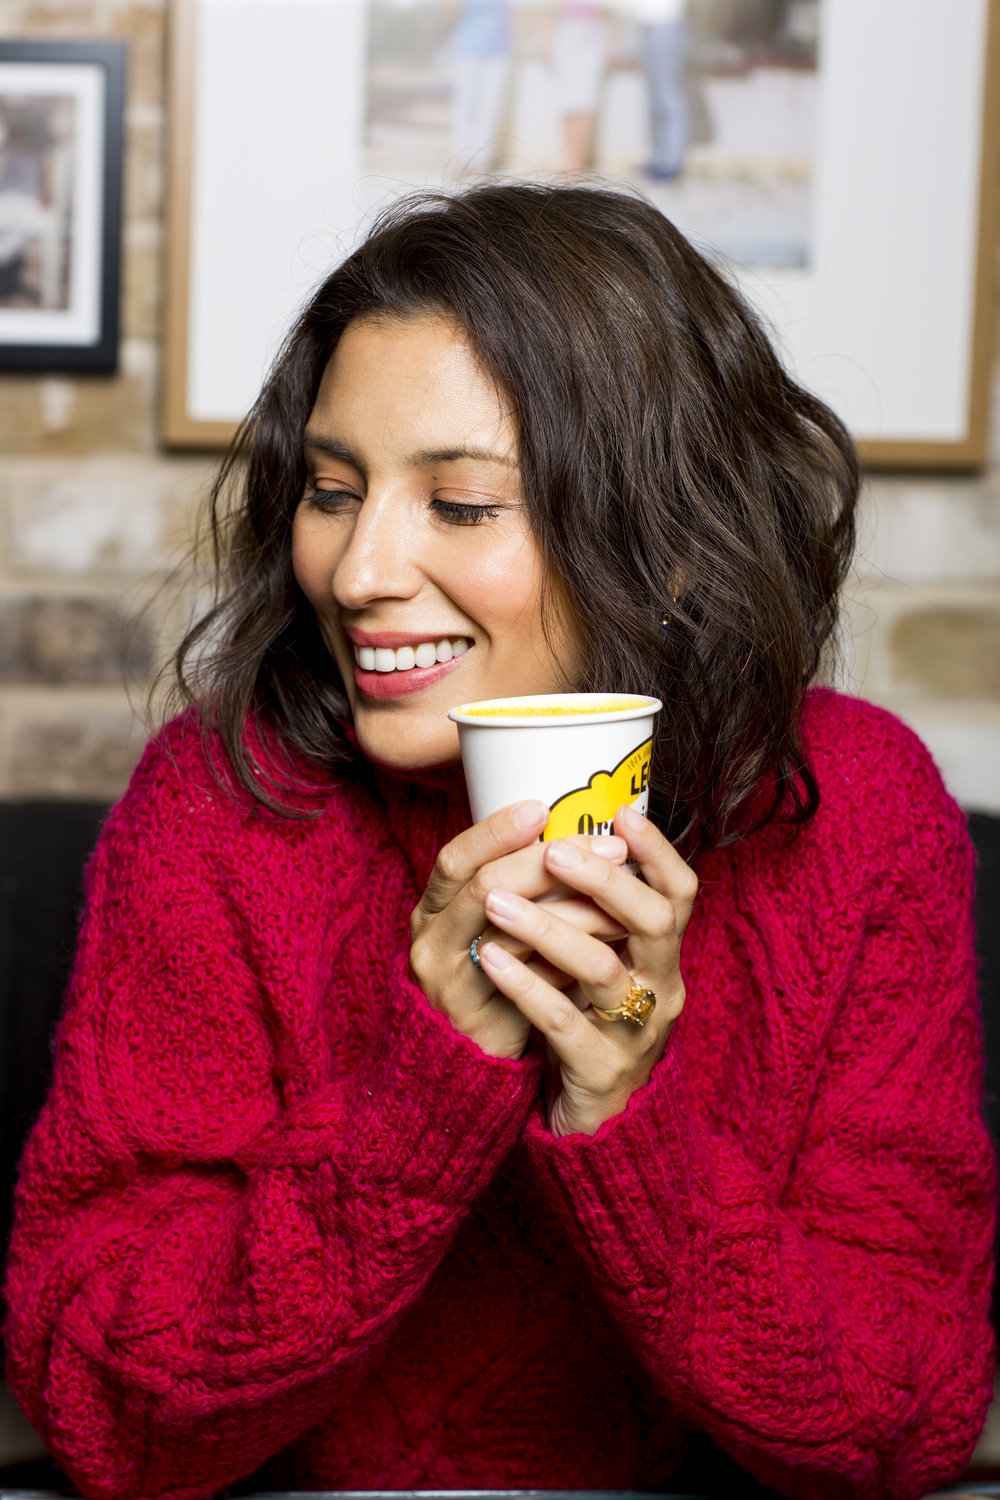 JasmineHemsley_Leon_GoldenMilk_NickHopperPhotography_RT-7611-2.jpg